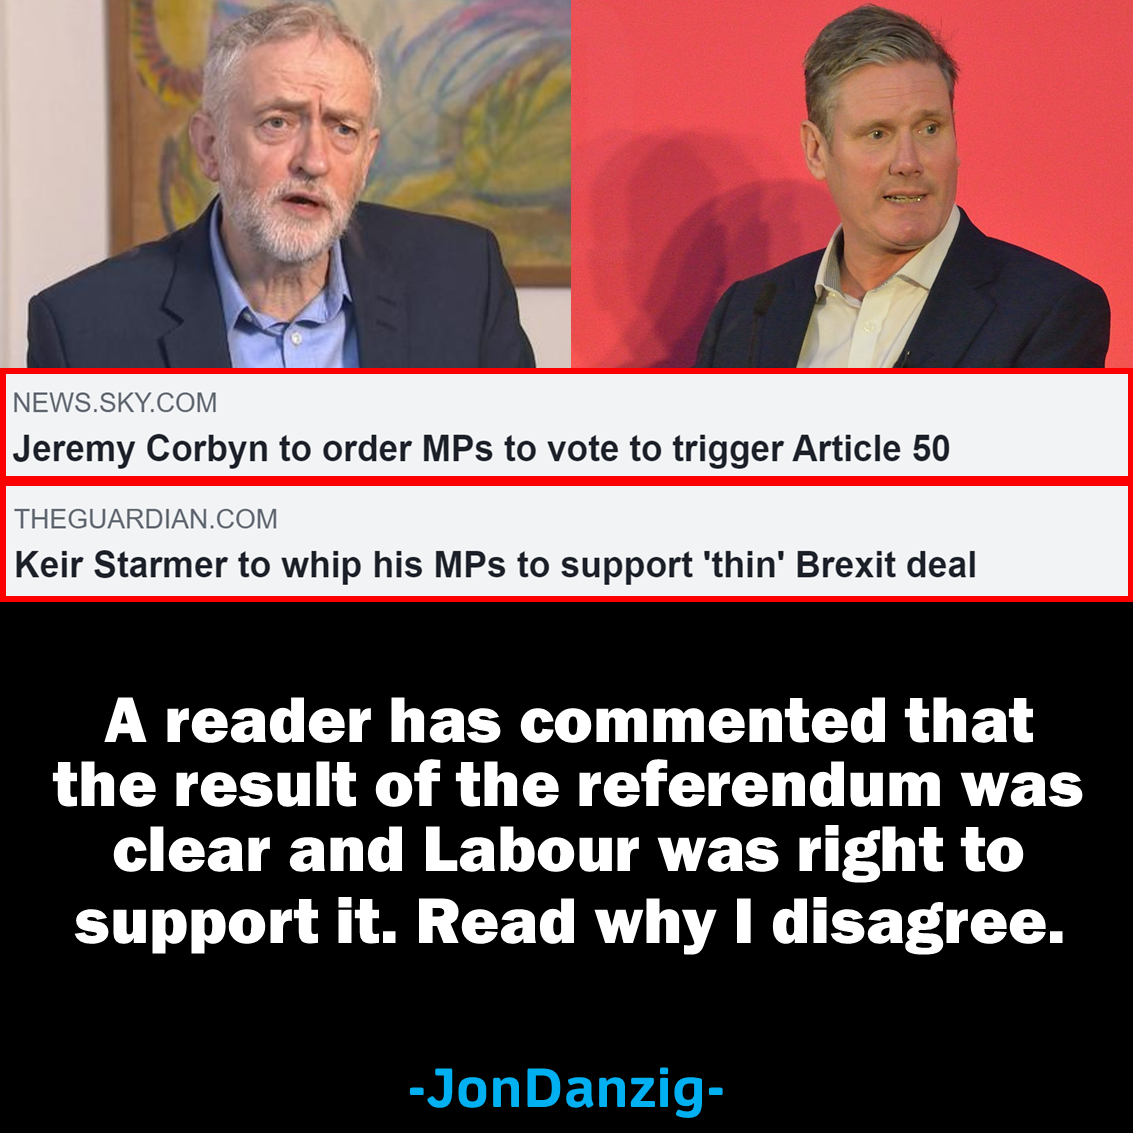 Why Labour should not have supported Brexit